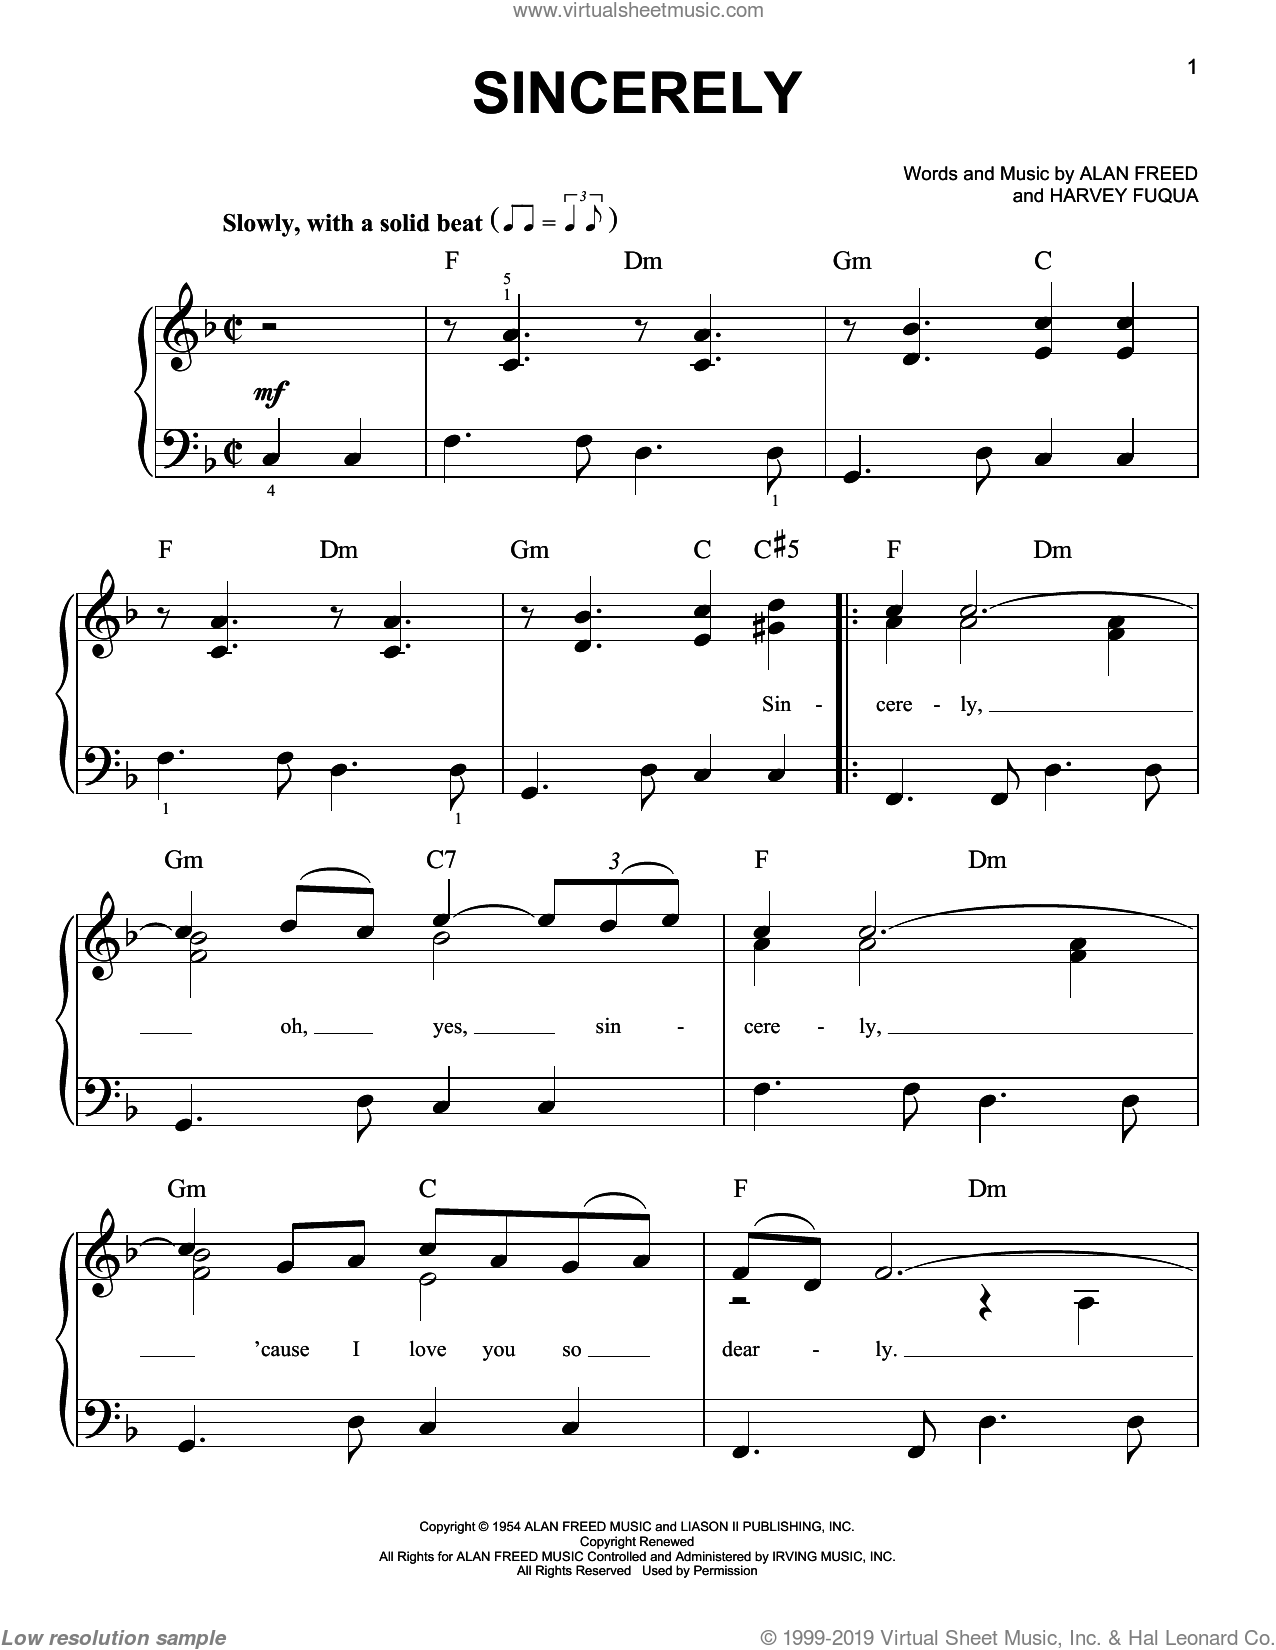 Sincerely sheet music for piano solo by Harvey Fuqua